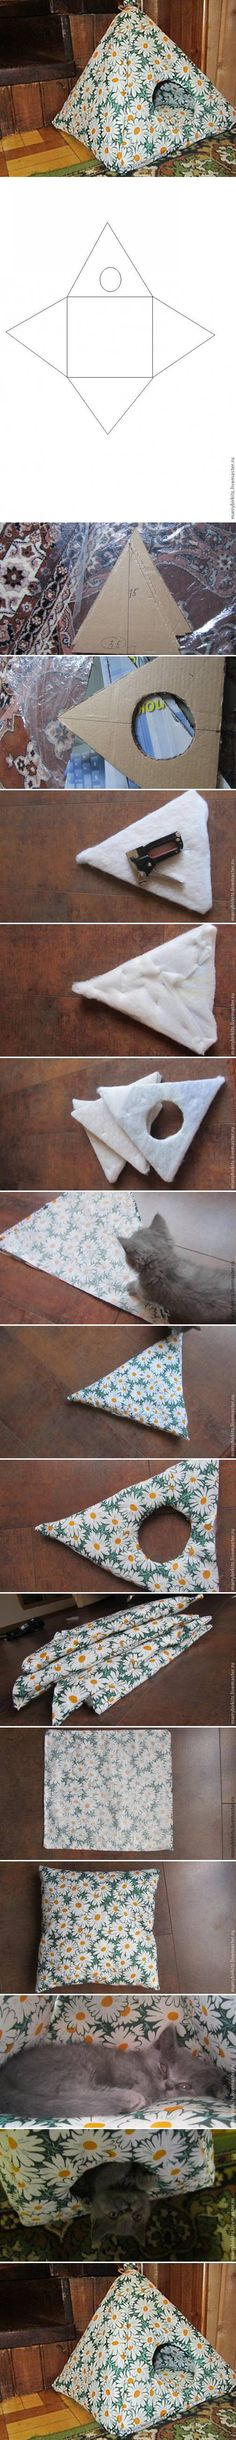 DIY Pyramid House for Cat DIY House for Cat